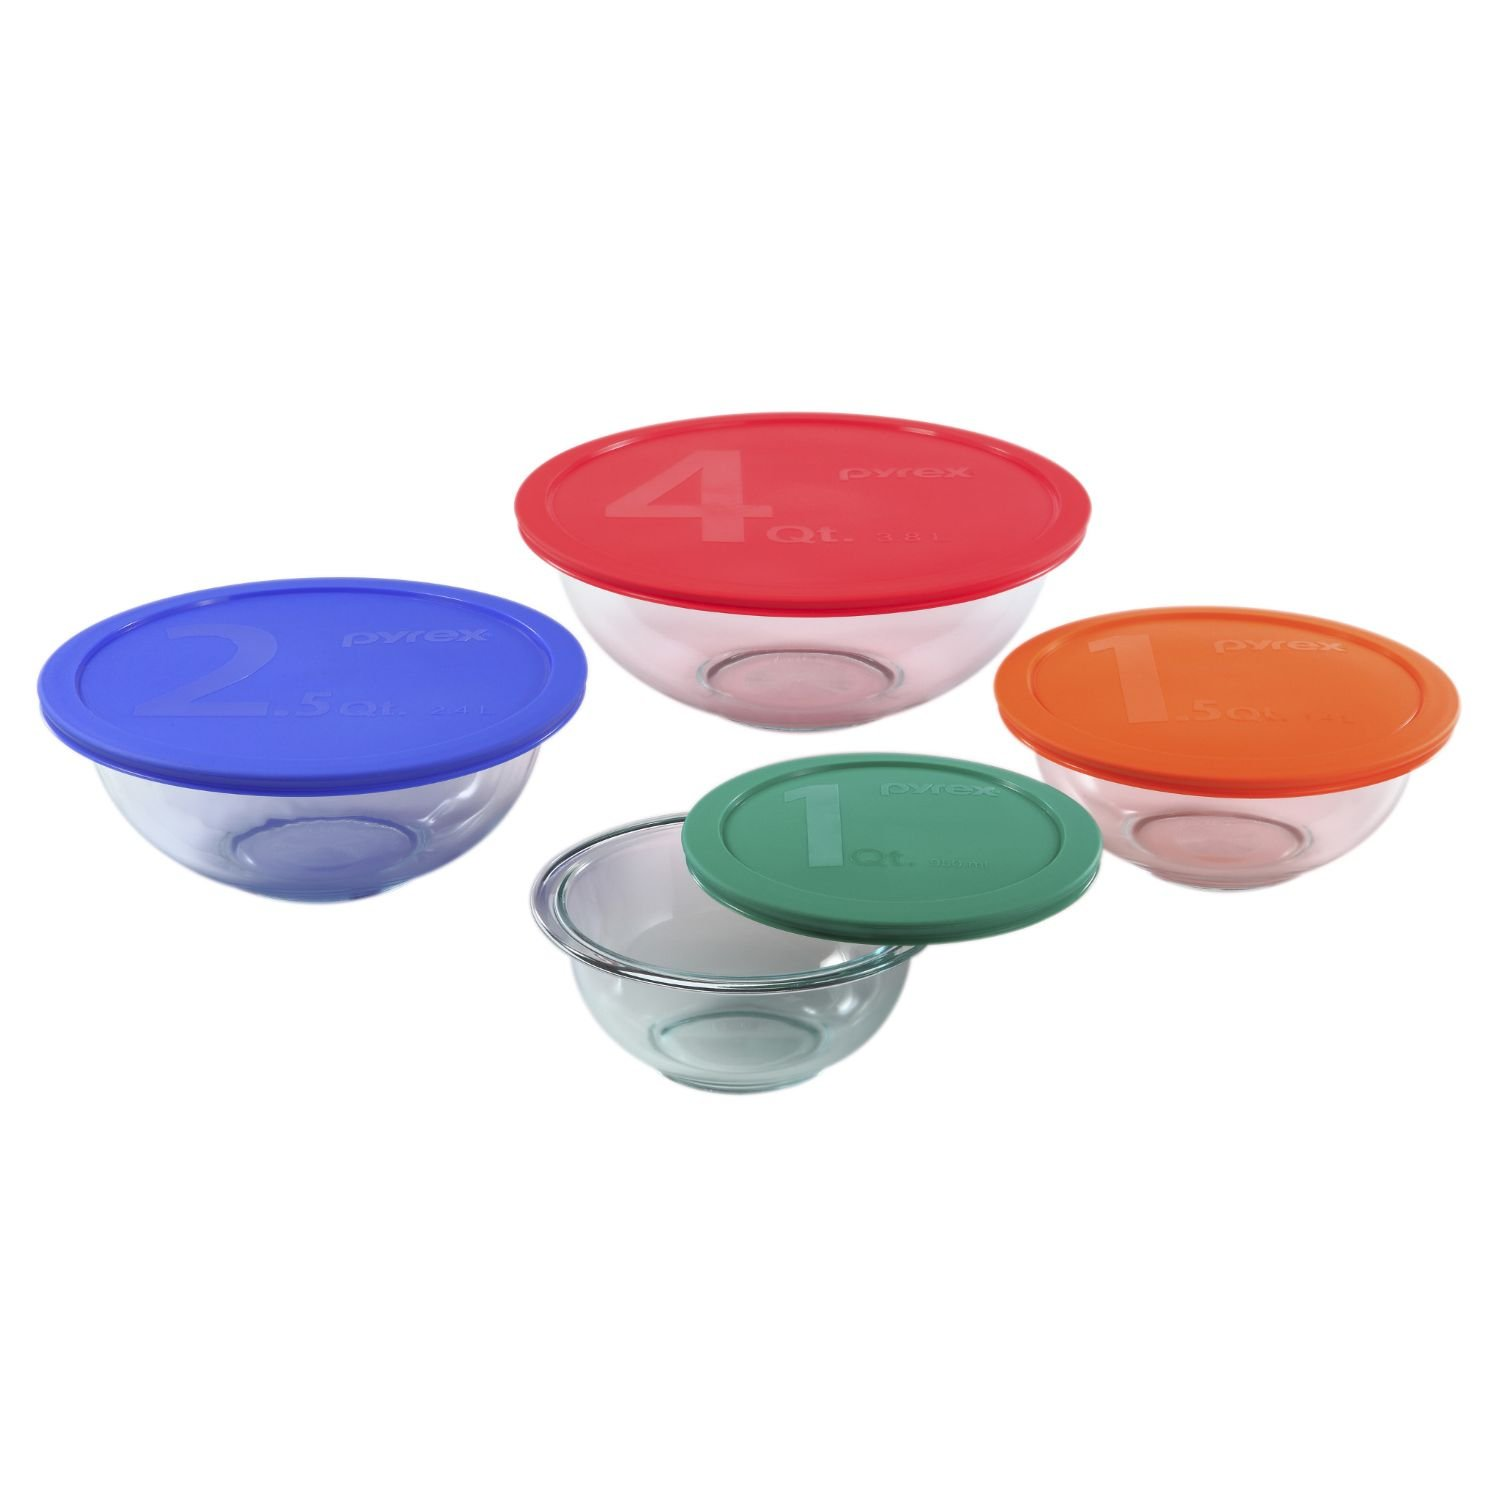 Pyrex 8 Piece Smart Essentials Bowl Set